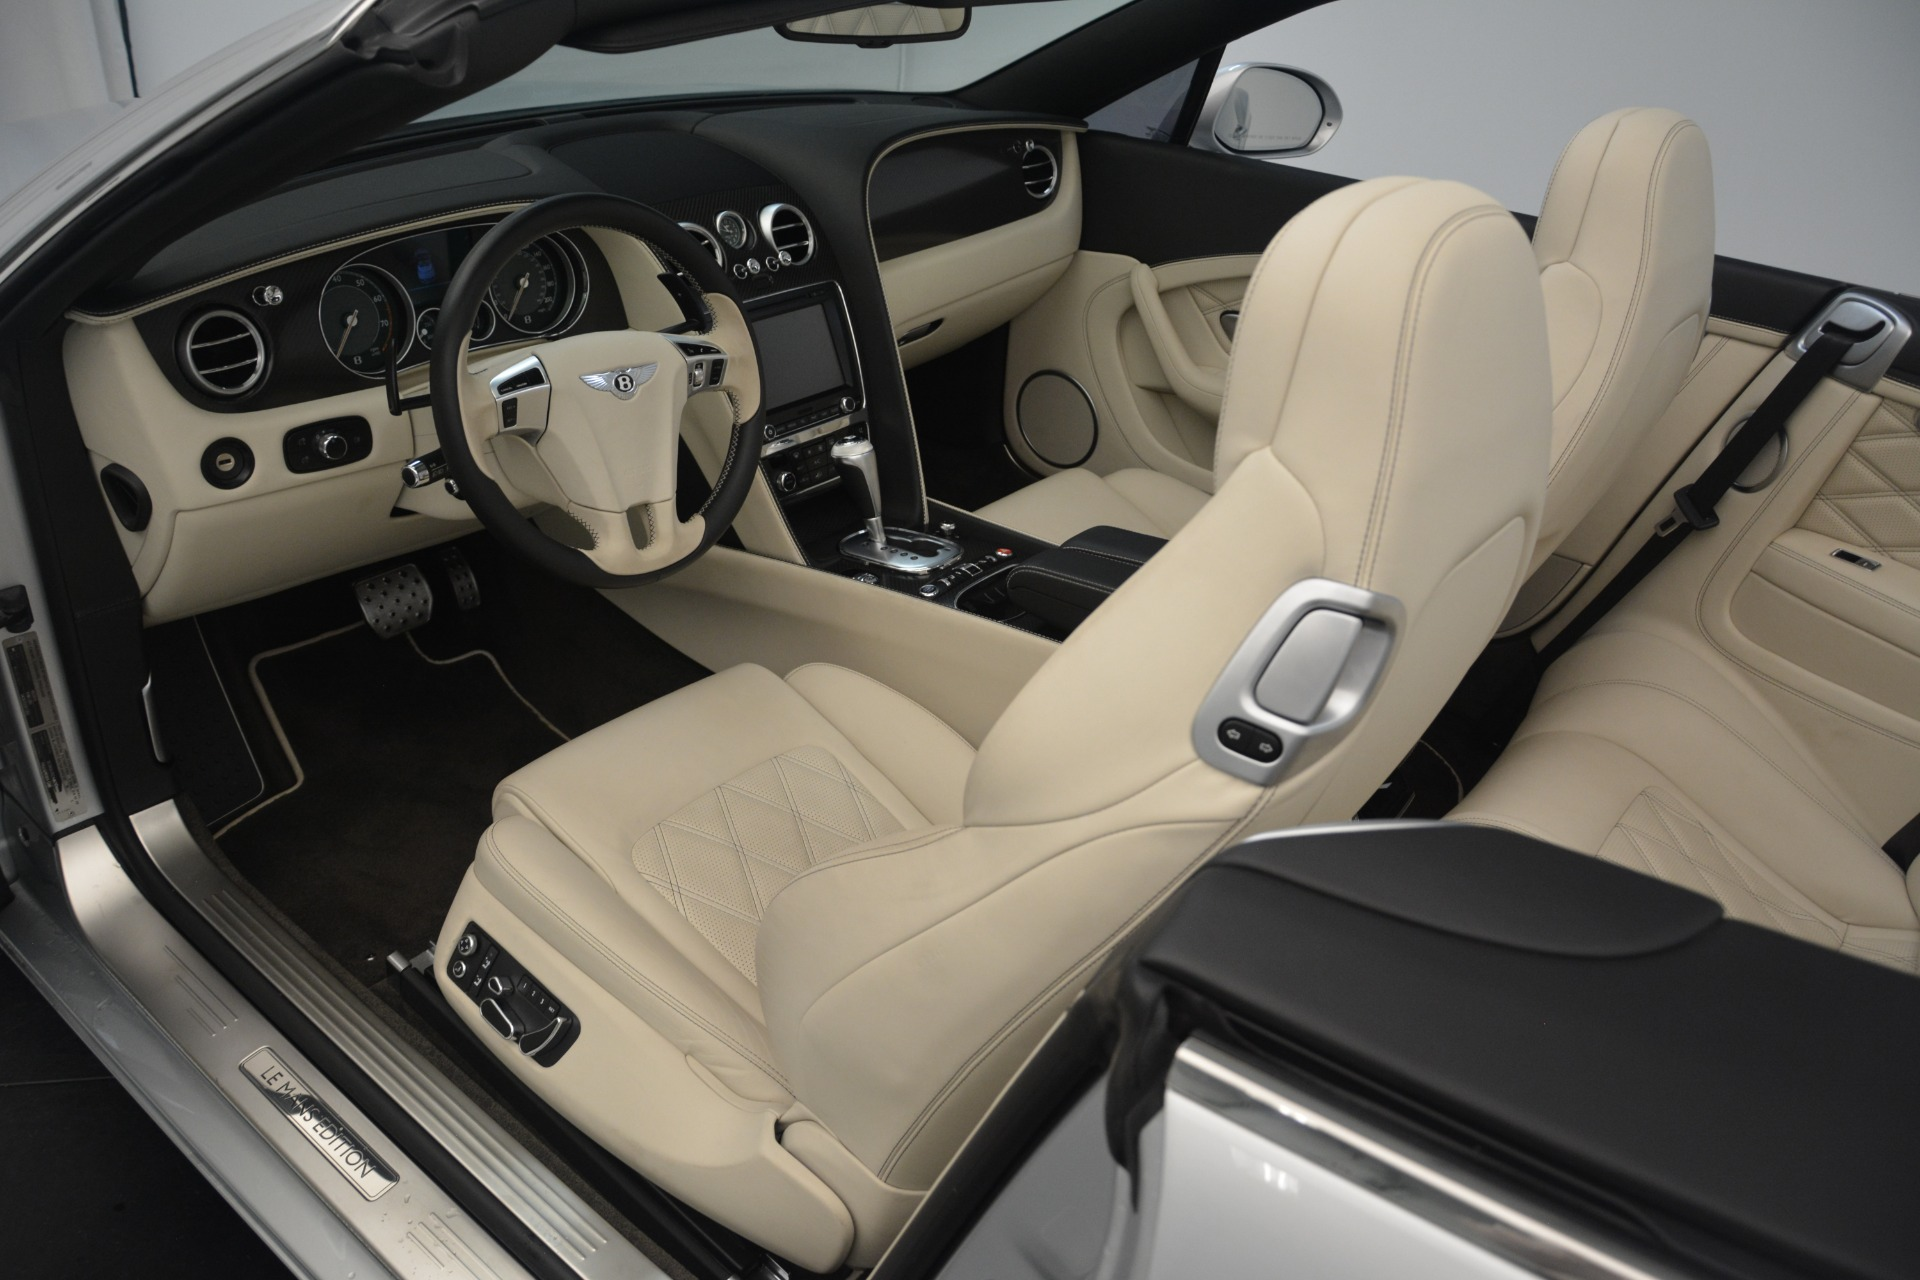 Used 2013 Bentley Continental GT W12 Le Mans Edition For Sale In Greenwich, CT 2519_p21